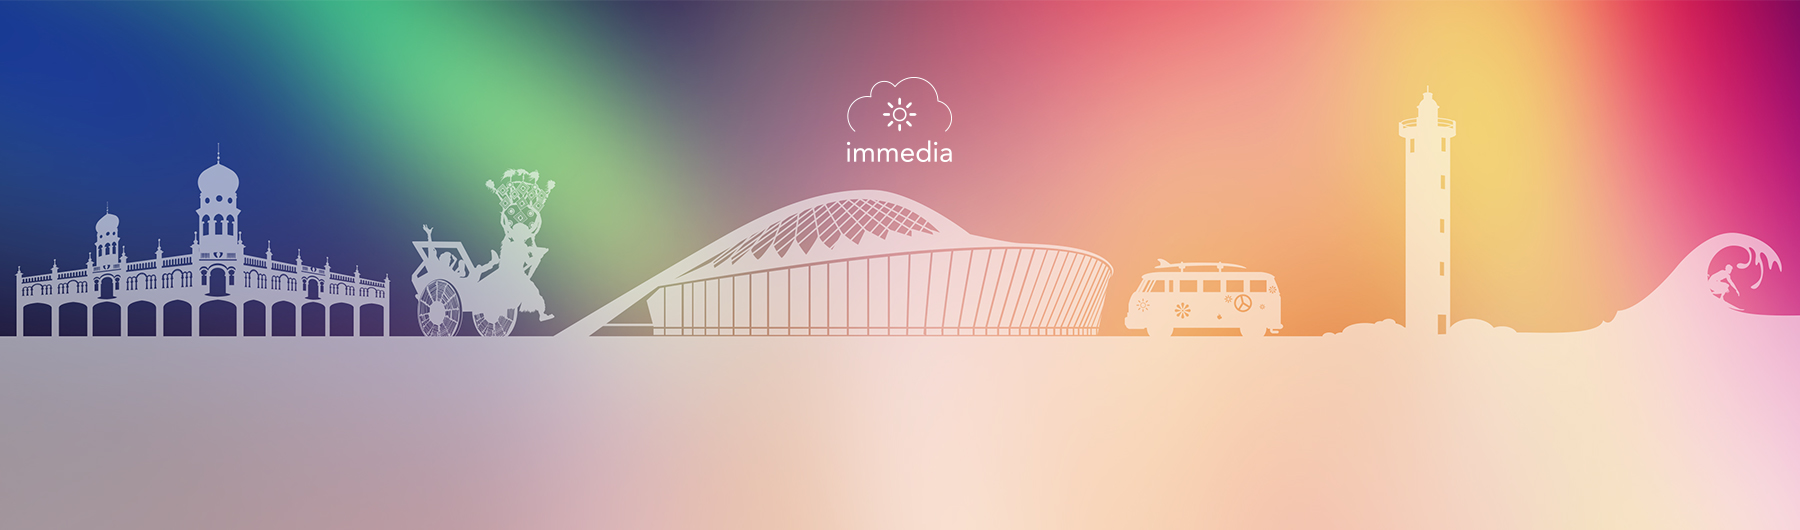 discover tomorrow with immedia